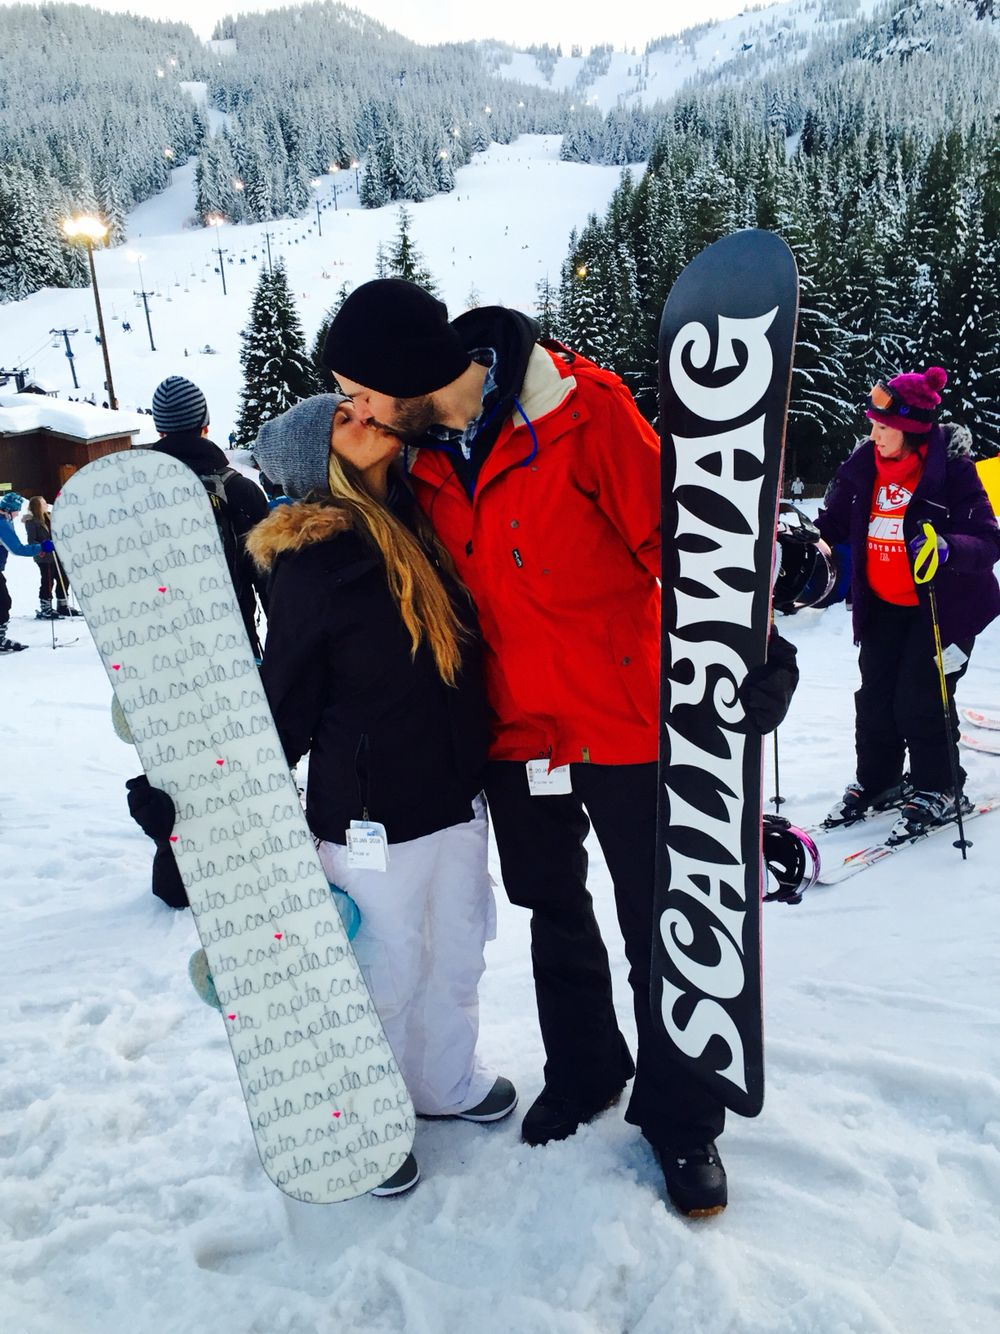 Couple Snowboarding Skiing Outfit Snowboarding Pictures Snowboard Girl